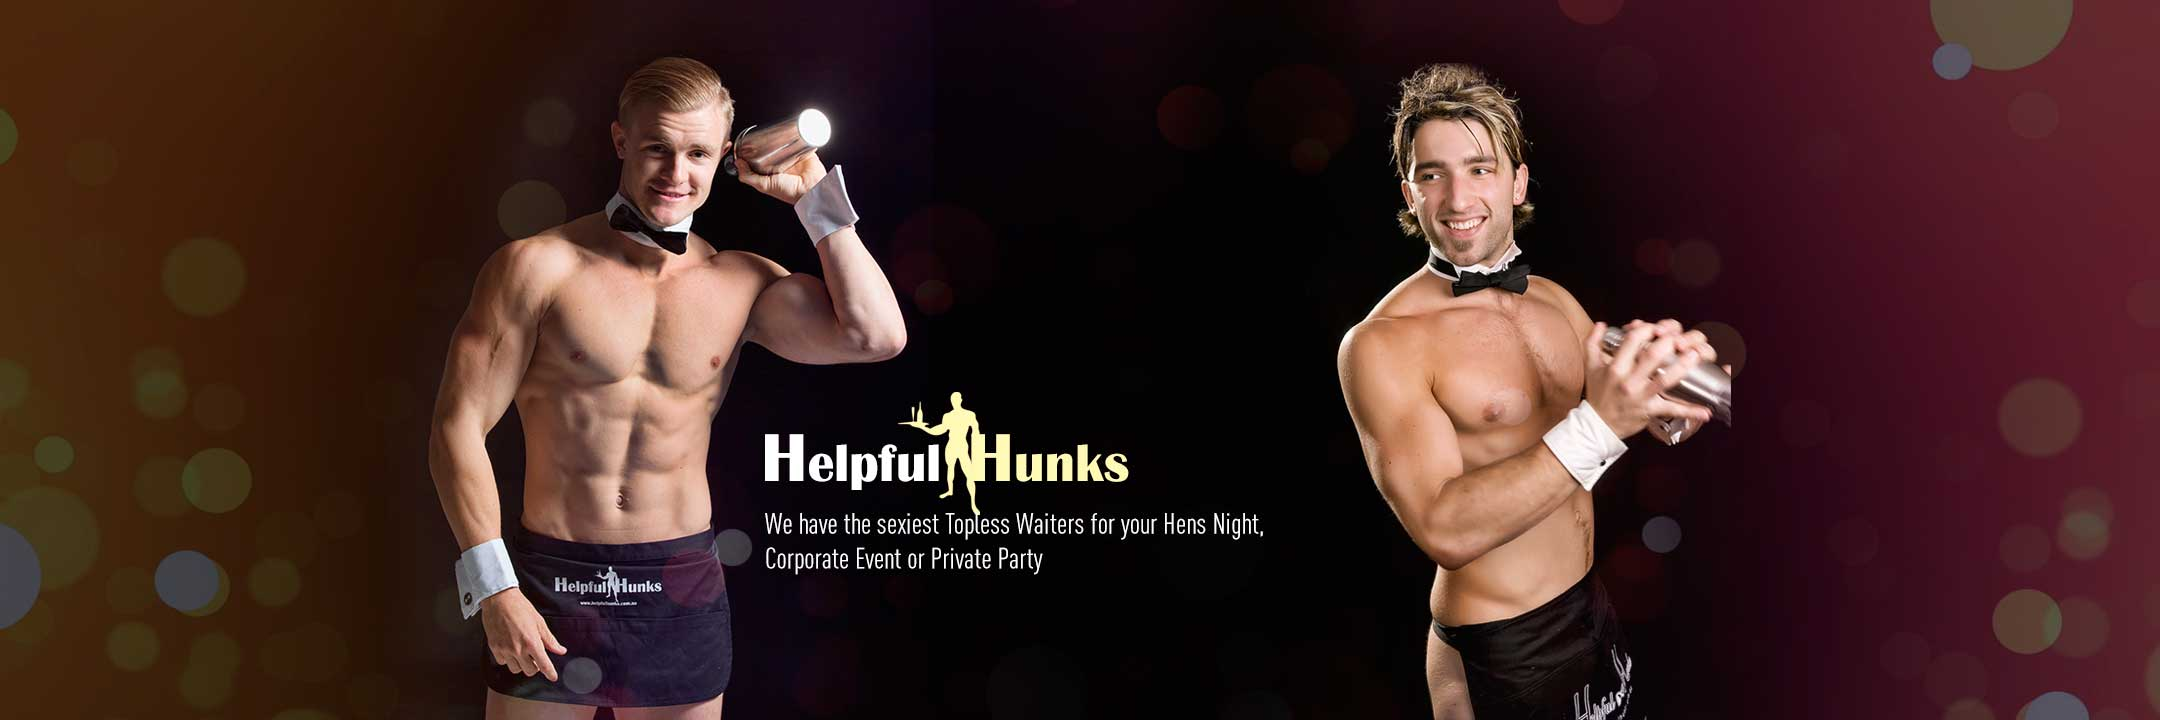 melbourne topless waiters at hens parties